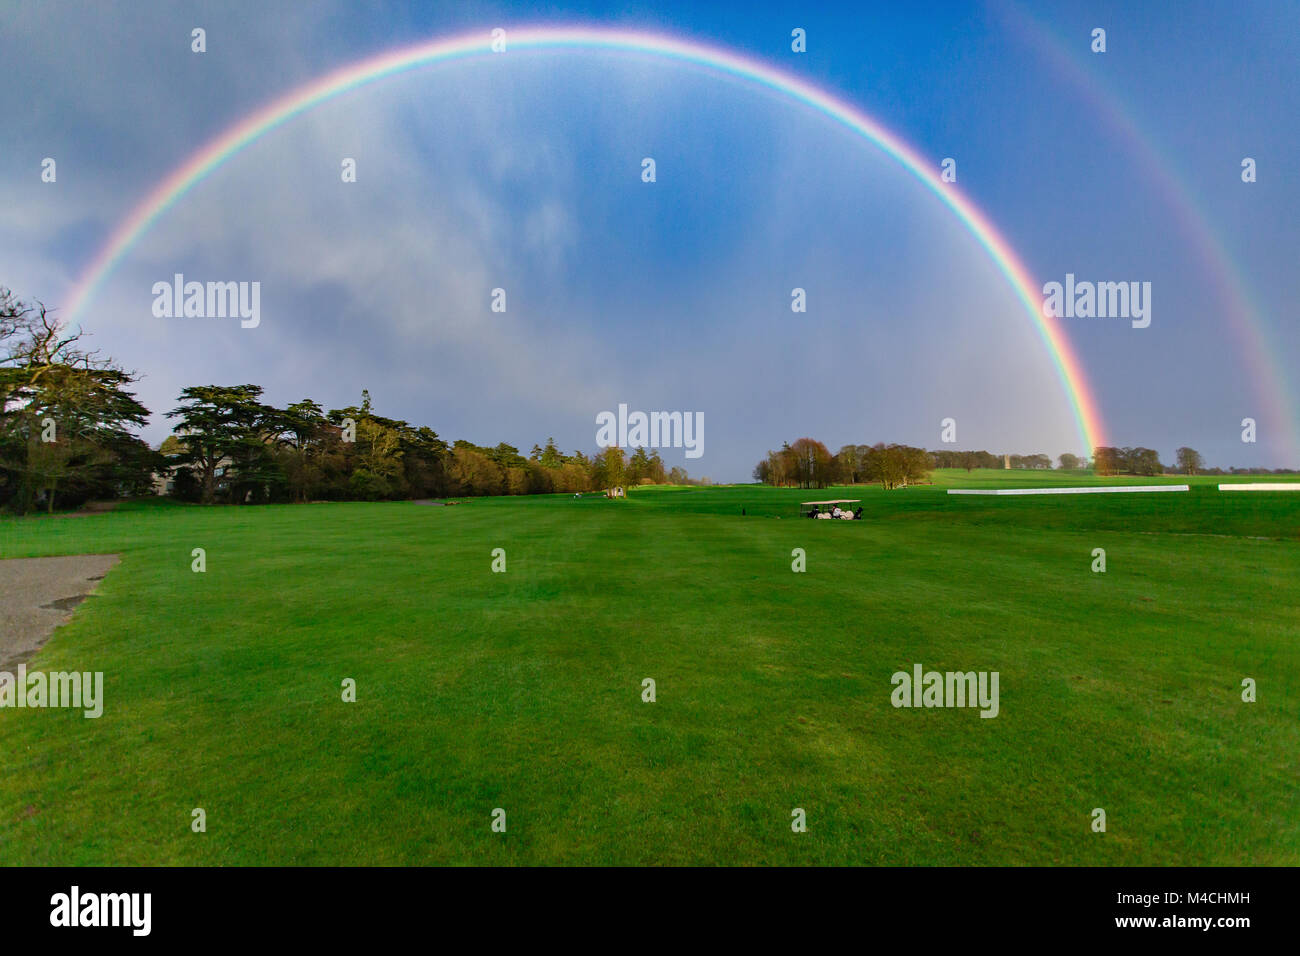 Beautiful rainbow over Carton House Golf Course in Maynooth, co, Kildare, Ireland - Stock Image